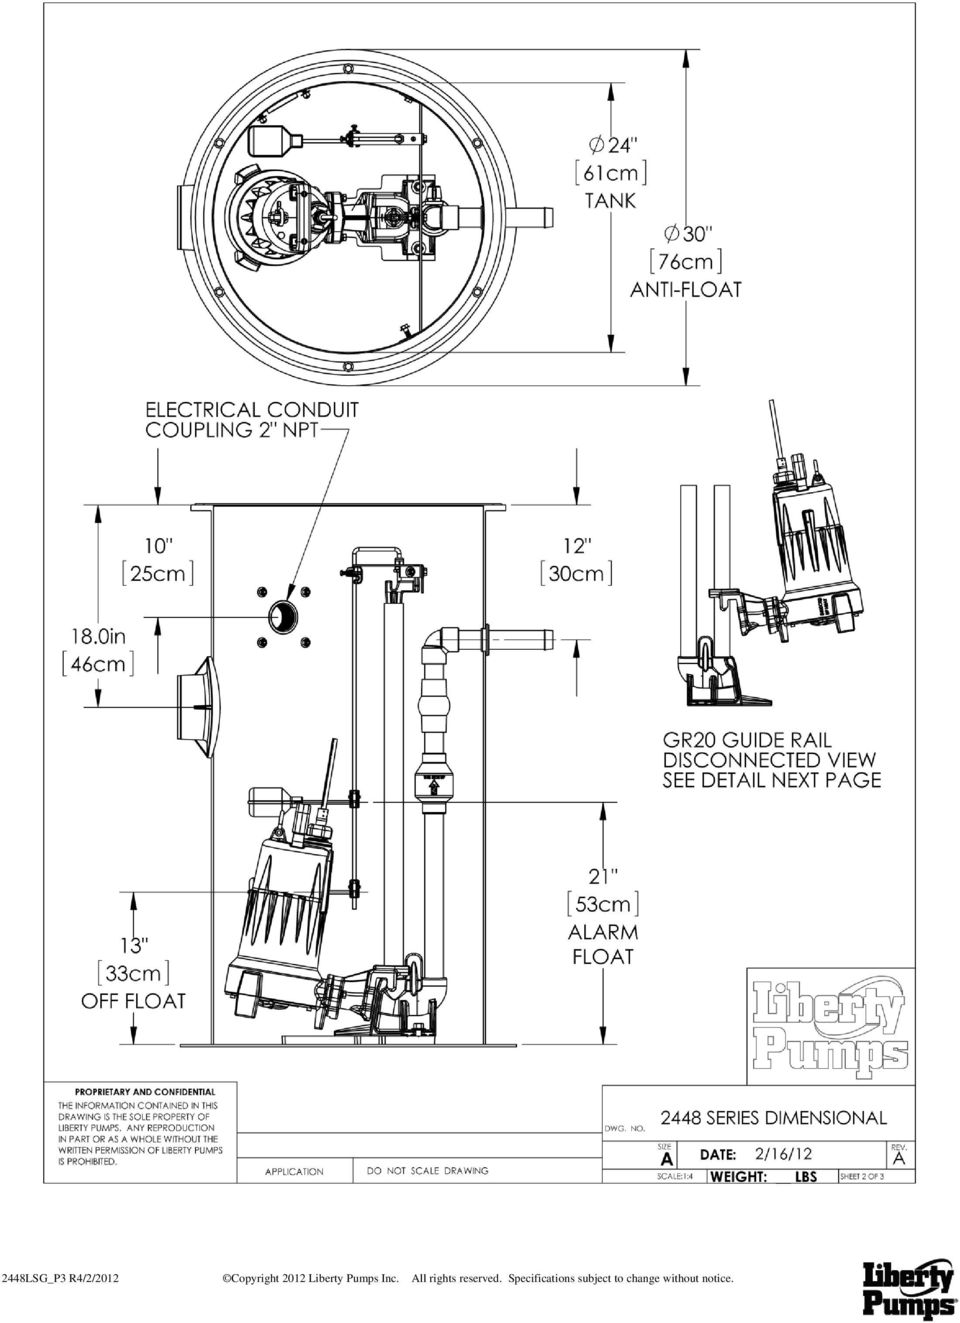 210 Grinder Pump Wiring Diagram Free For You 220 Volt Specifications 2448lsg 2448lsgx Series Omnivore 2hp Simplex Rh Docplayer Net Myers